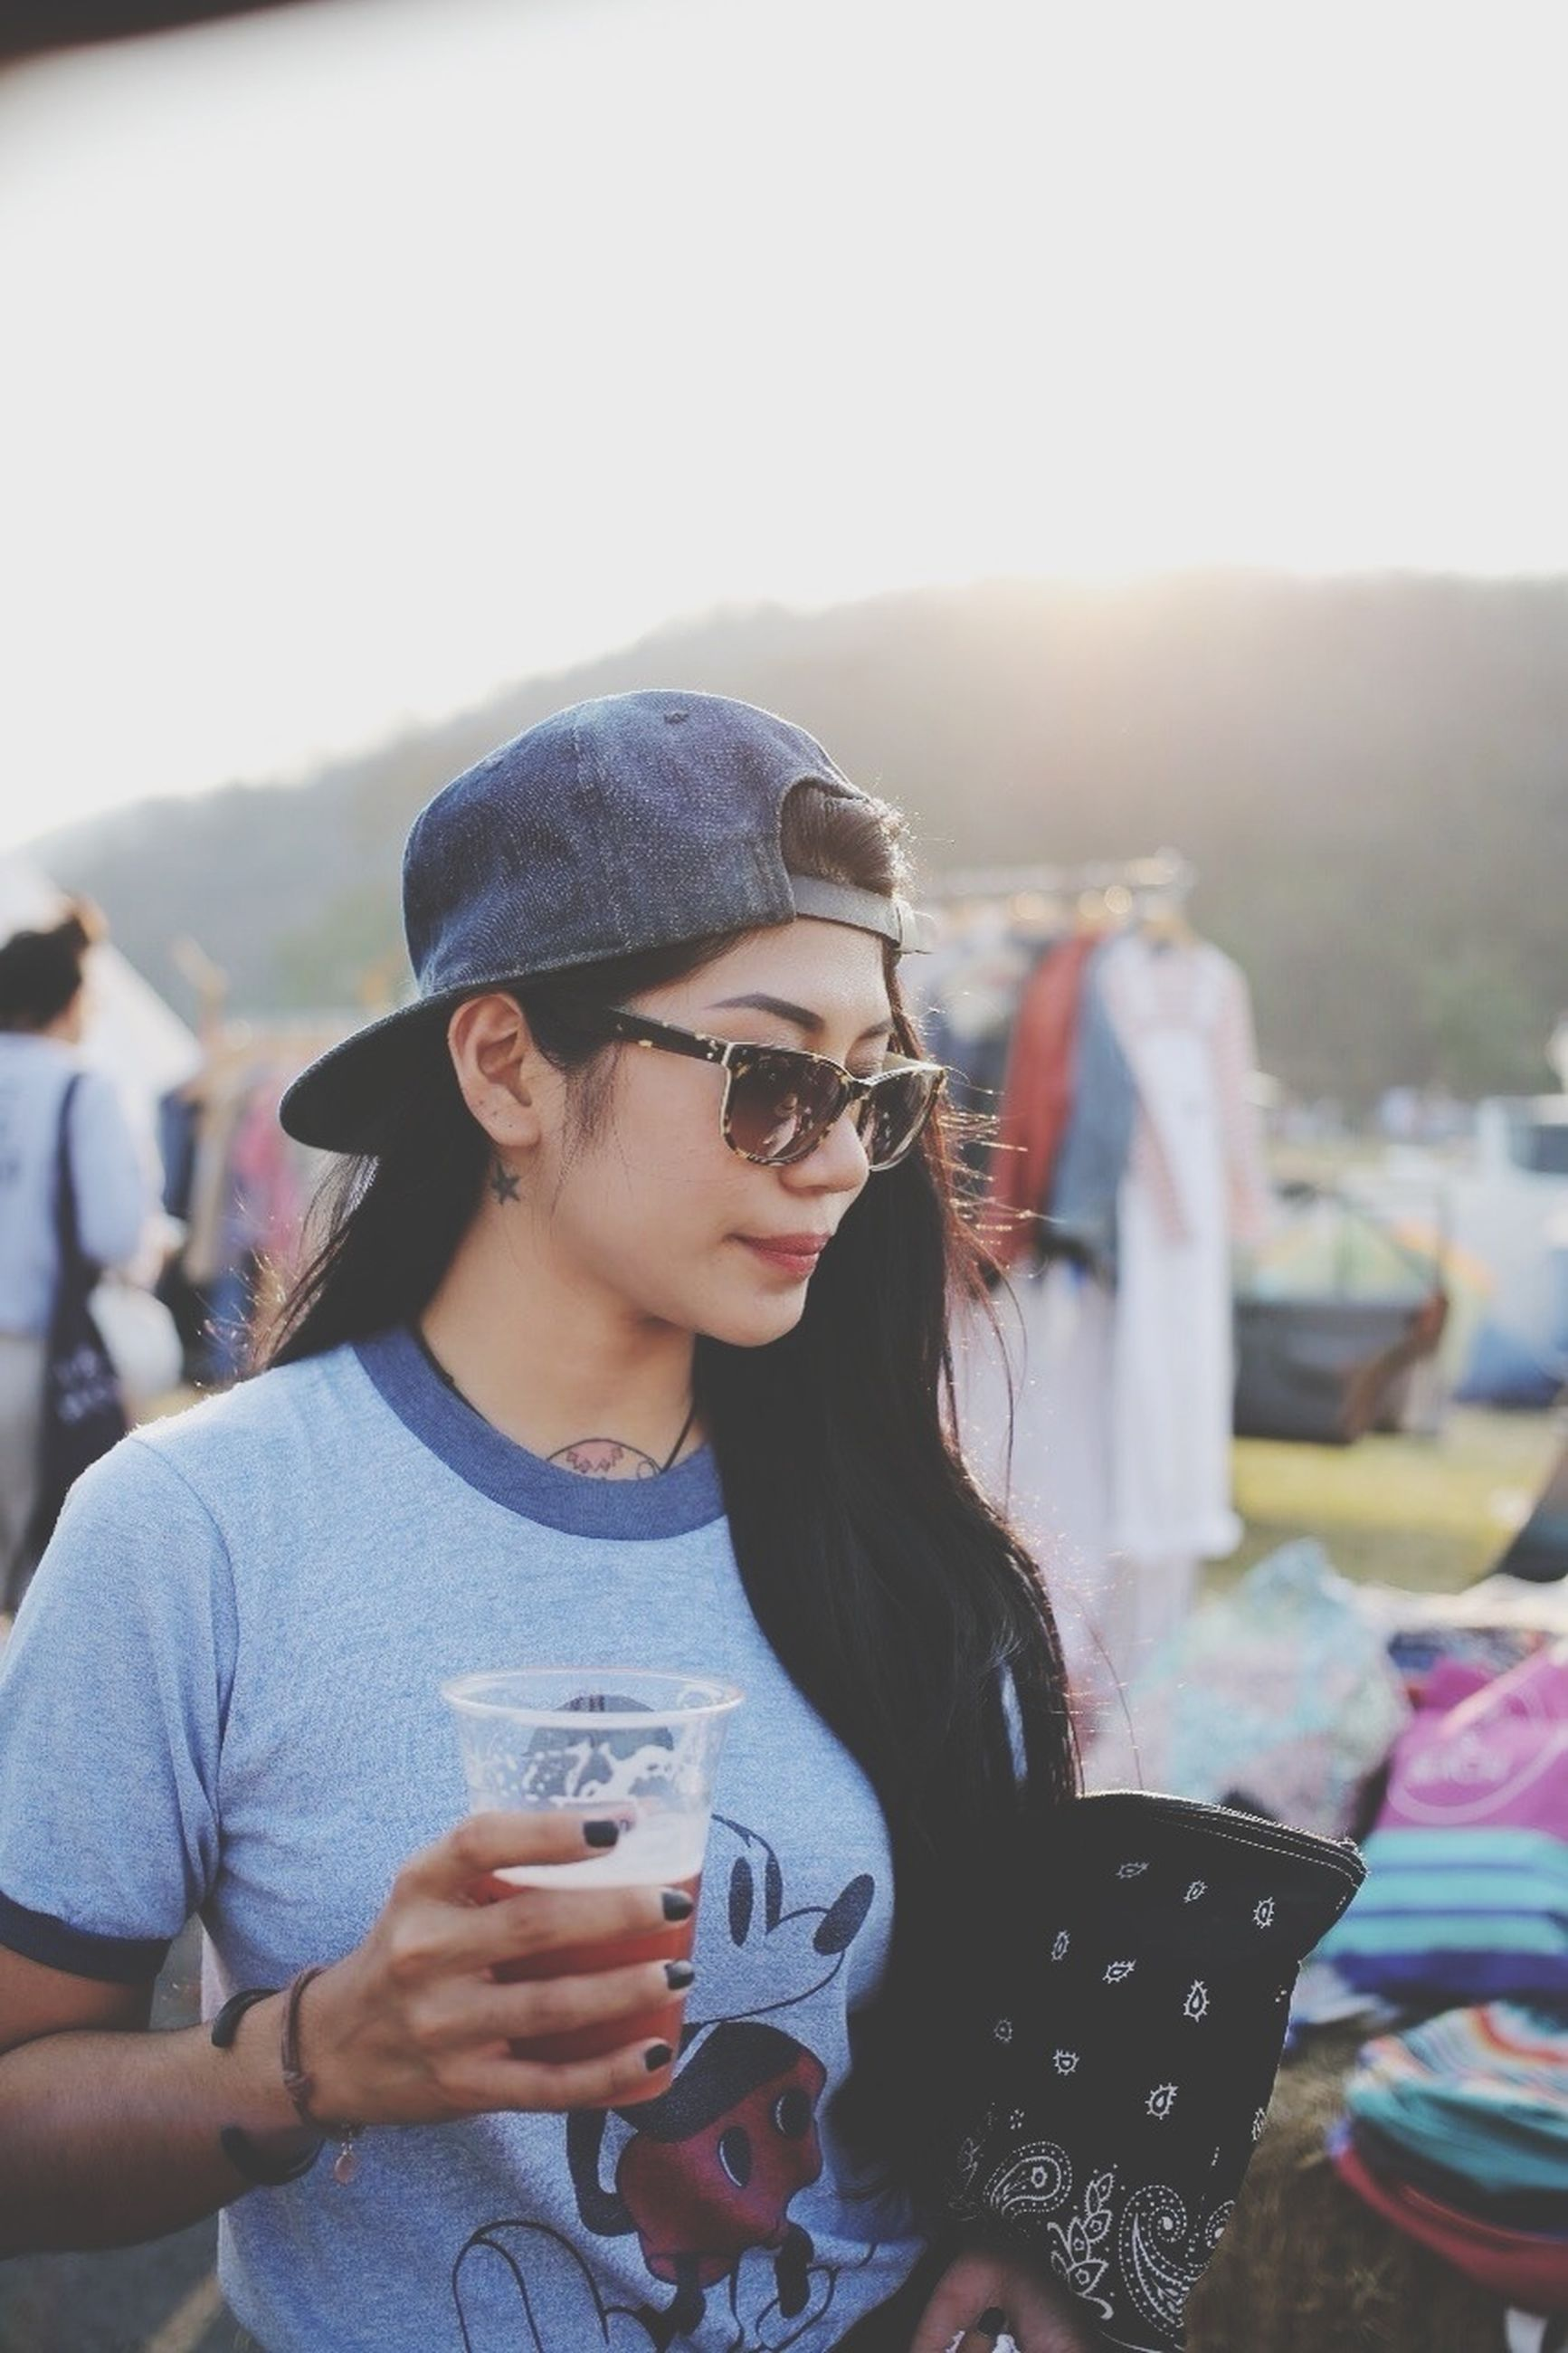 lifestyles, young adult, leisure activity, person, sunglasses, looking at camera, portrait, casual clothing, young men, focus on foreground, front view, headshot, smiling, holding, waist up, happiness, head and shoulders